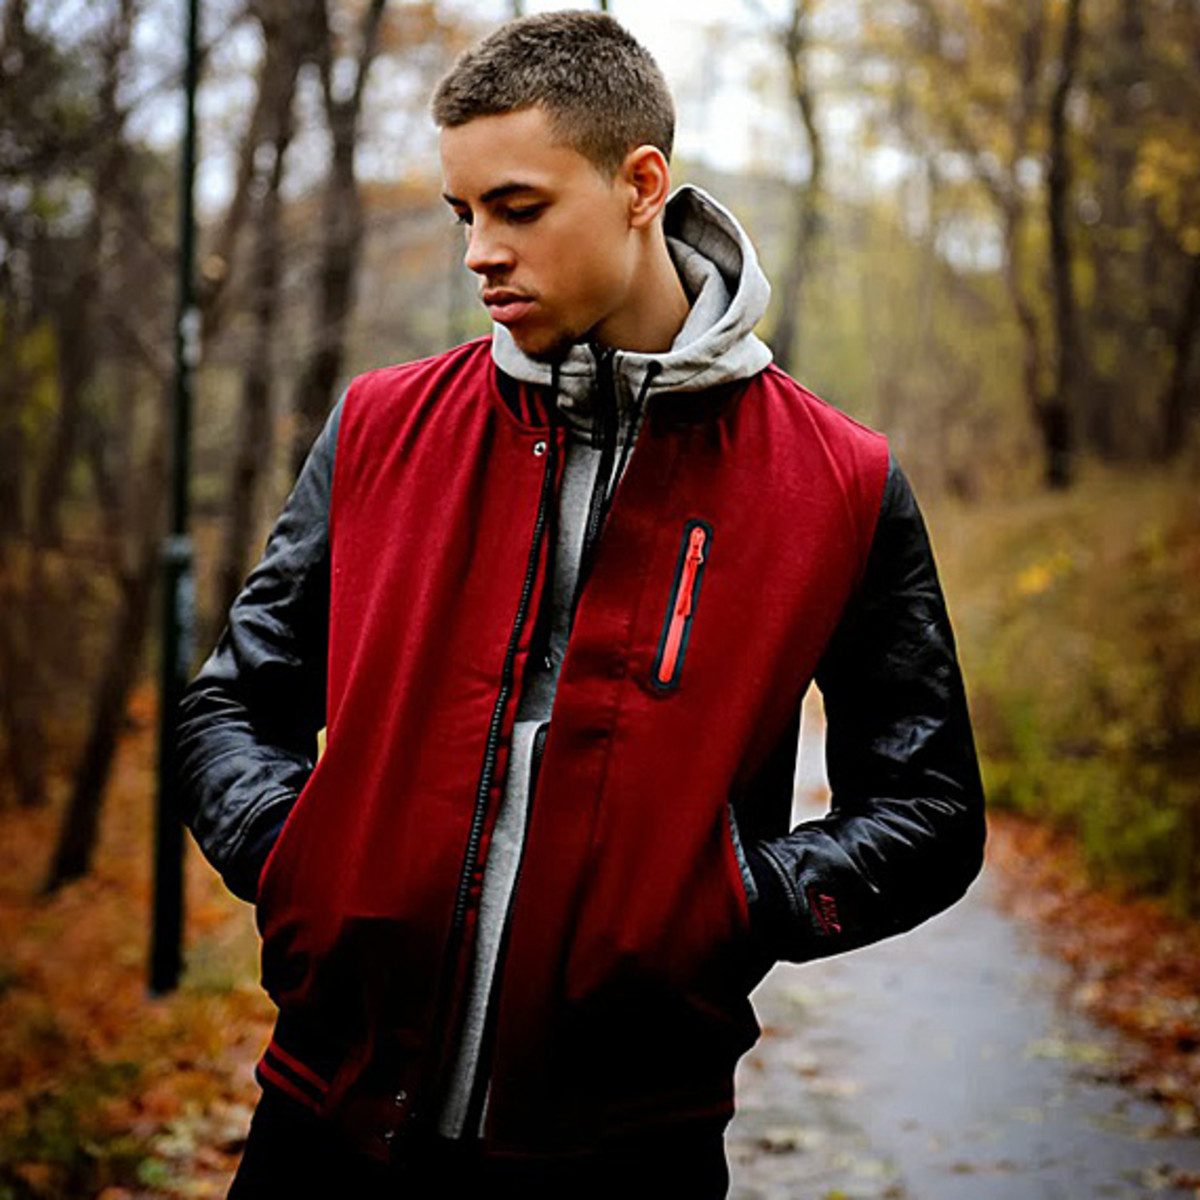 Nike Sportswear Destroyer Jacket - Fall/Winter 2013 Collection Loobook | Styled by Caliroots - 0